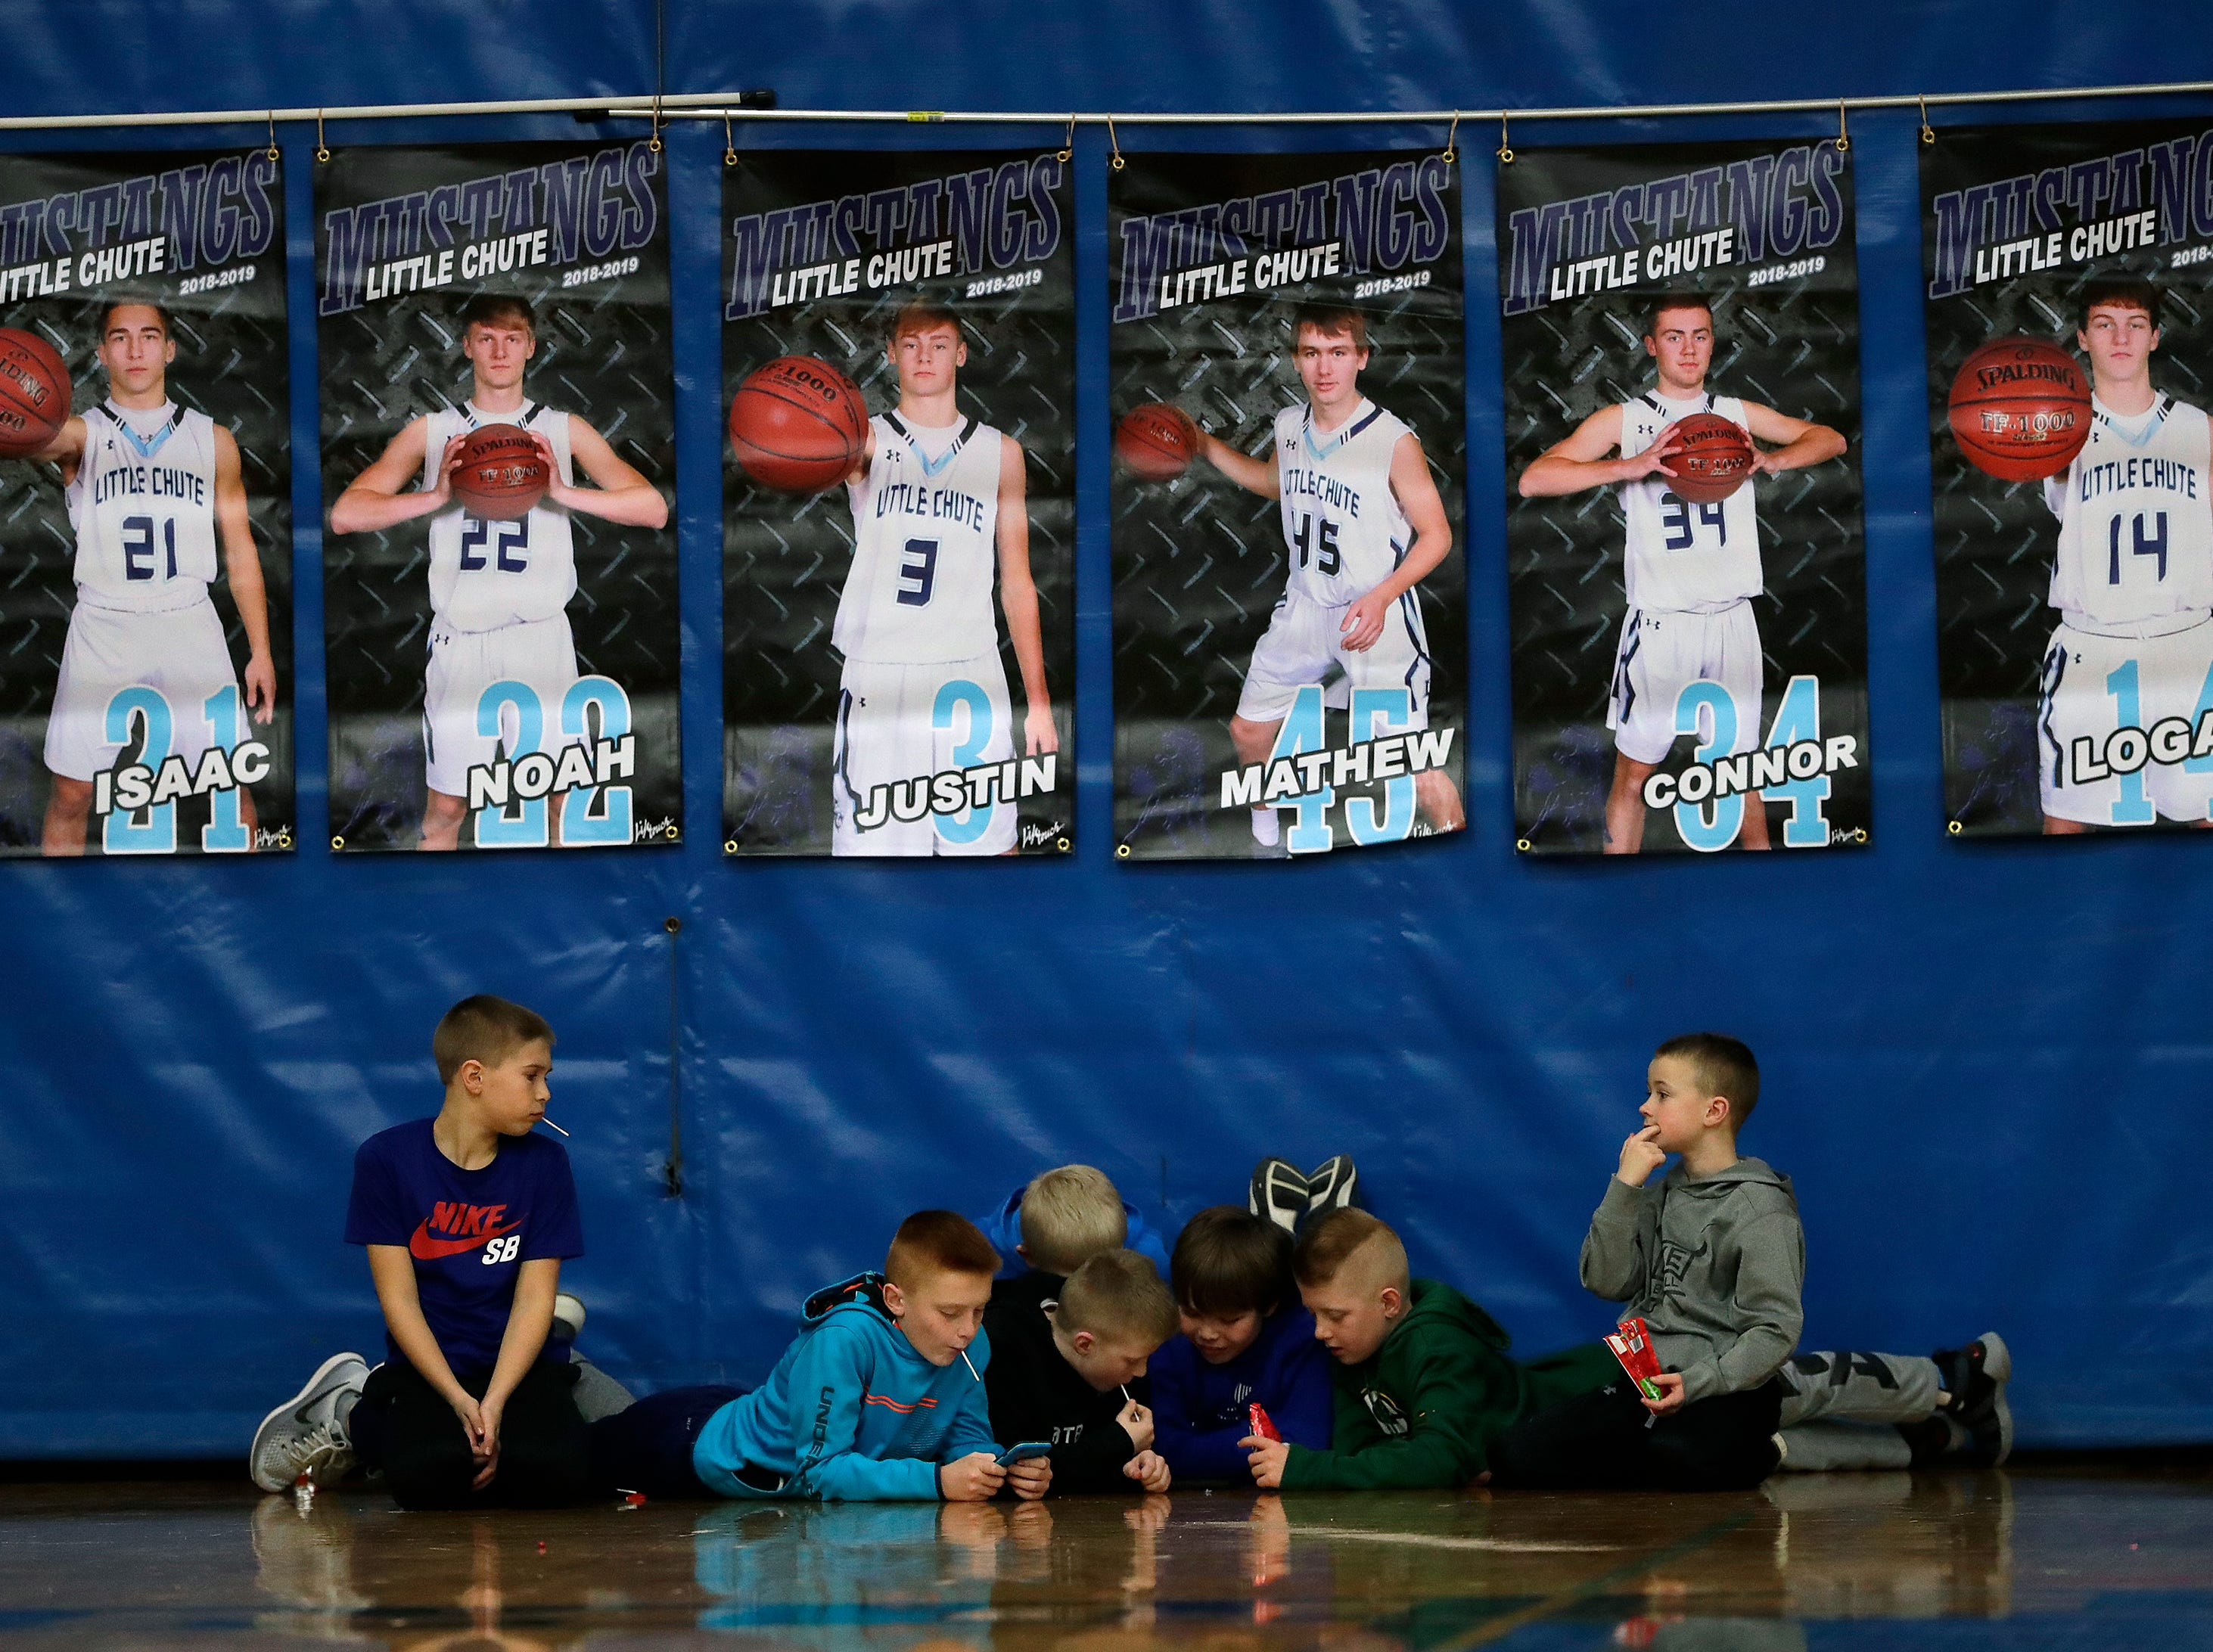 Young Little Chute High School fans have better things to do as their team plays against Wrightstown High School during their boys basketball game Friday, February 1, 2019, in Little Chute, Wis. 